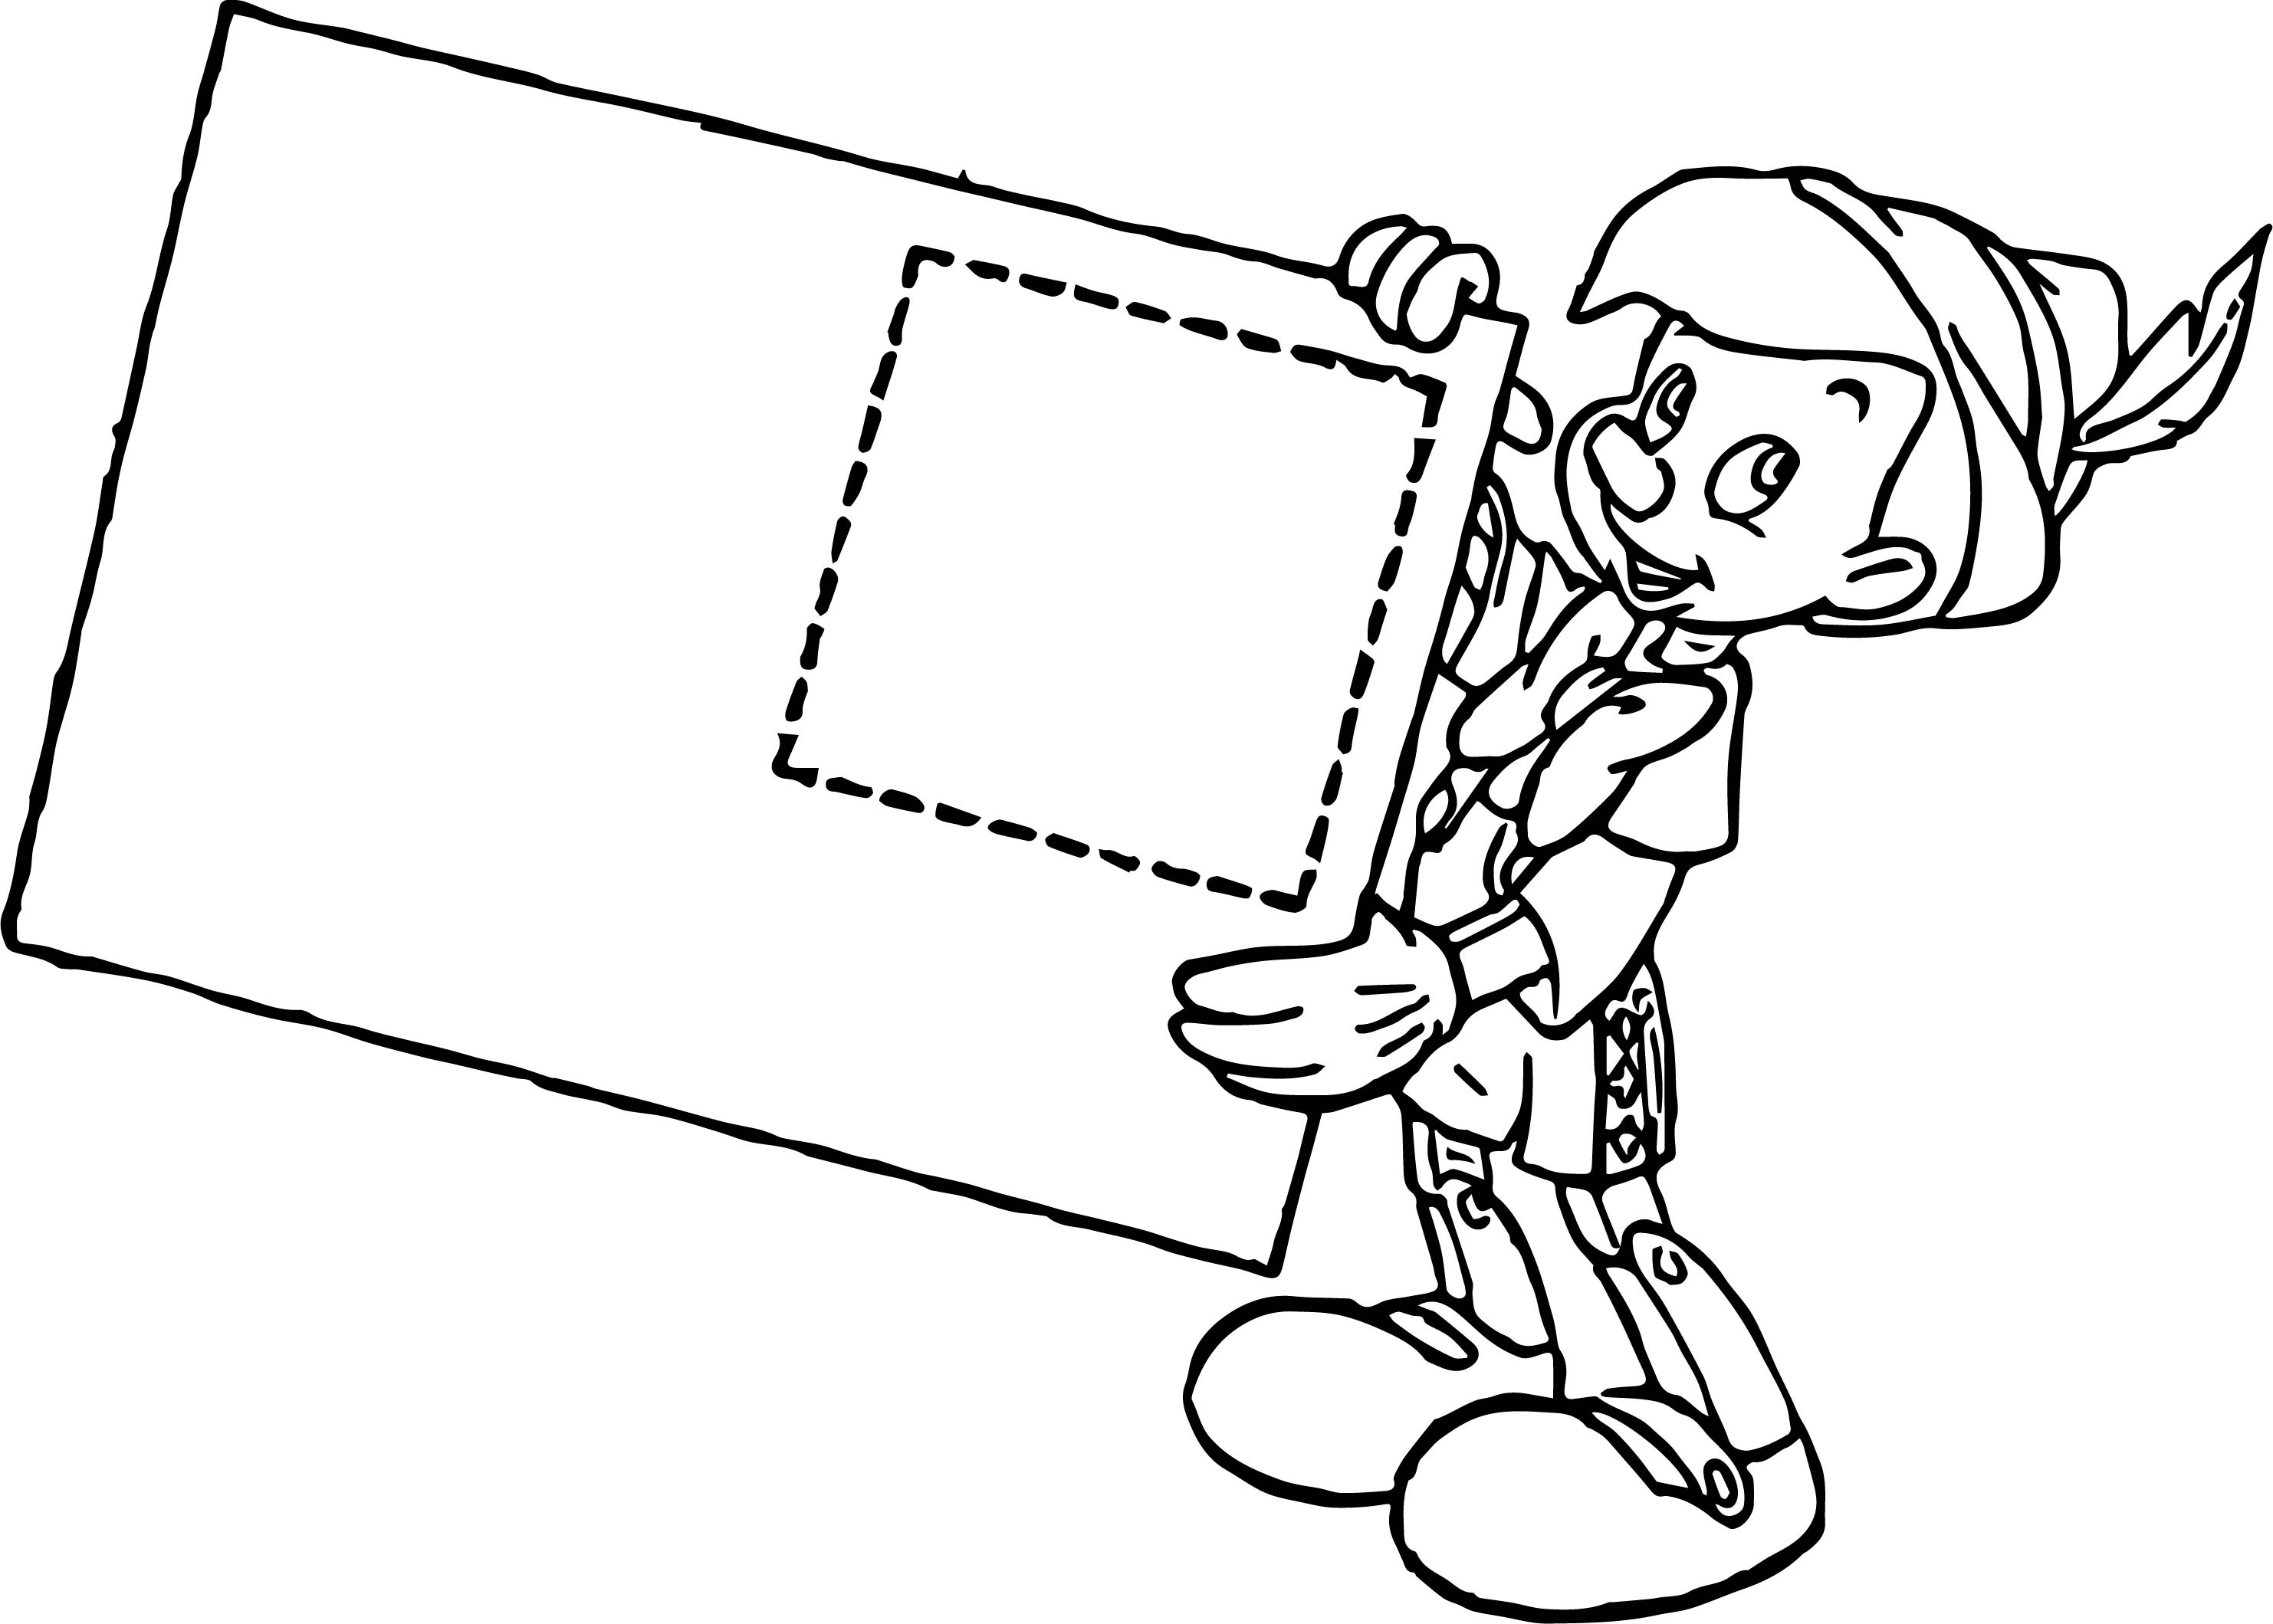 Pinocchio Letter Coloring Pages